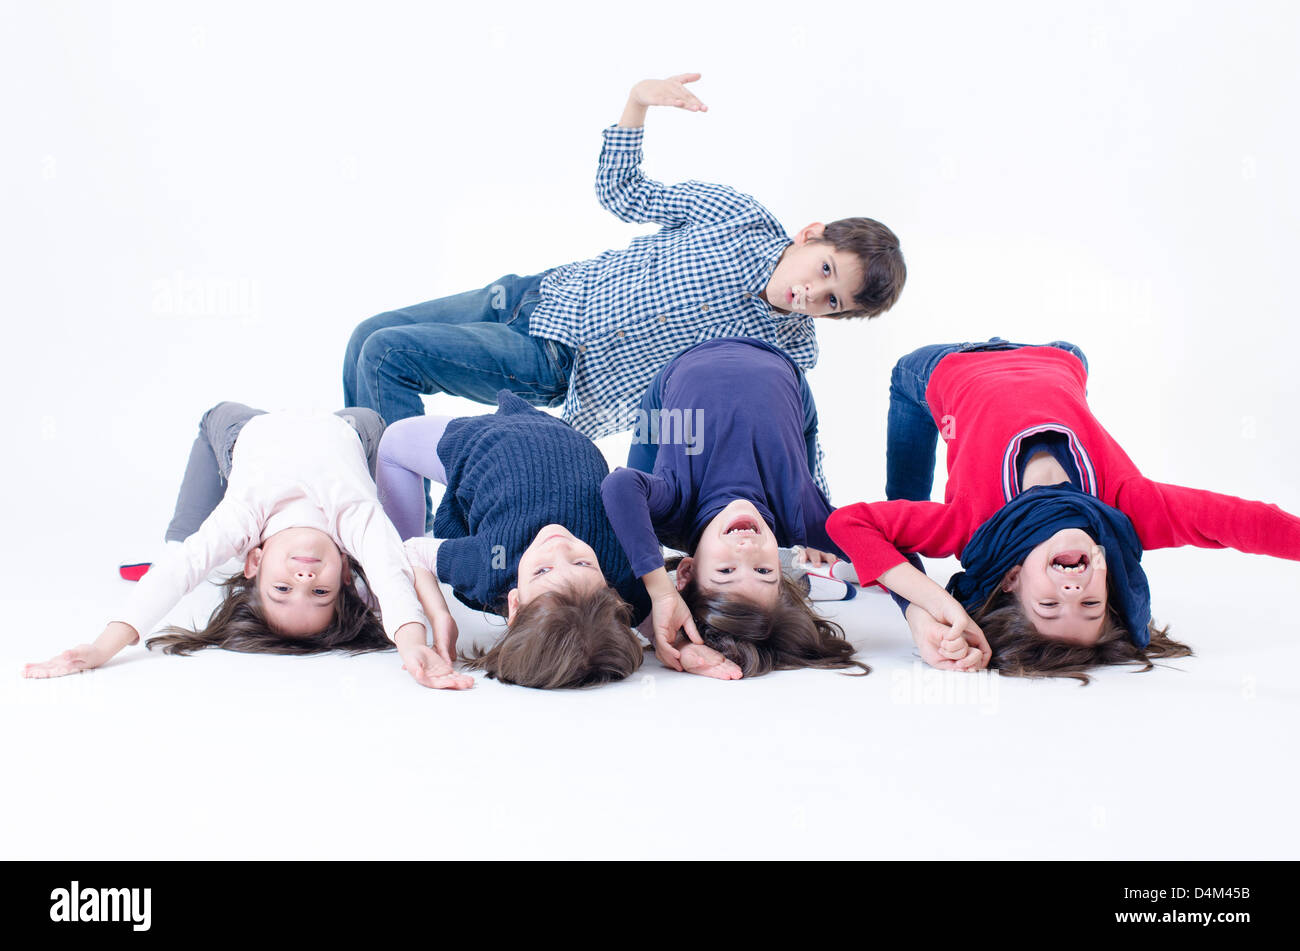 Five brothers from a large family - Stock Image